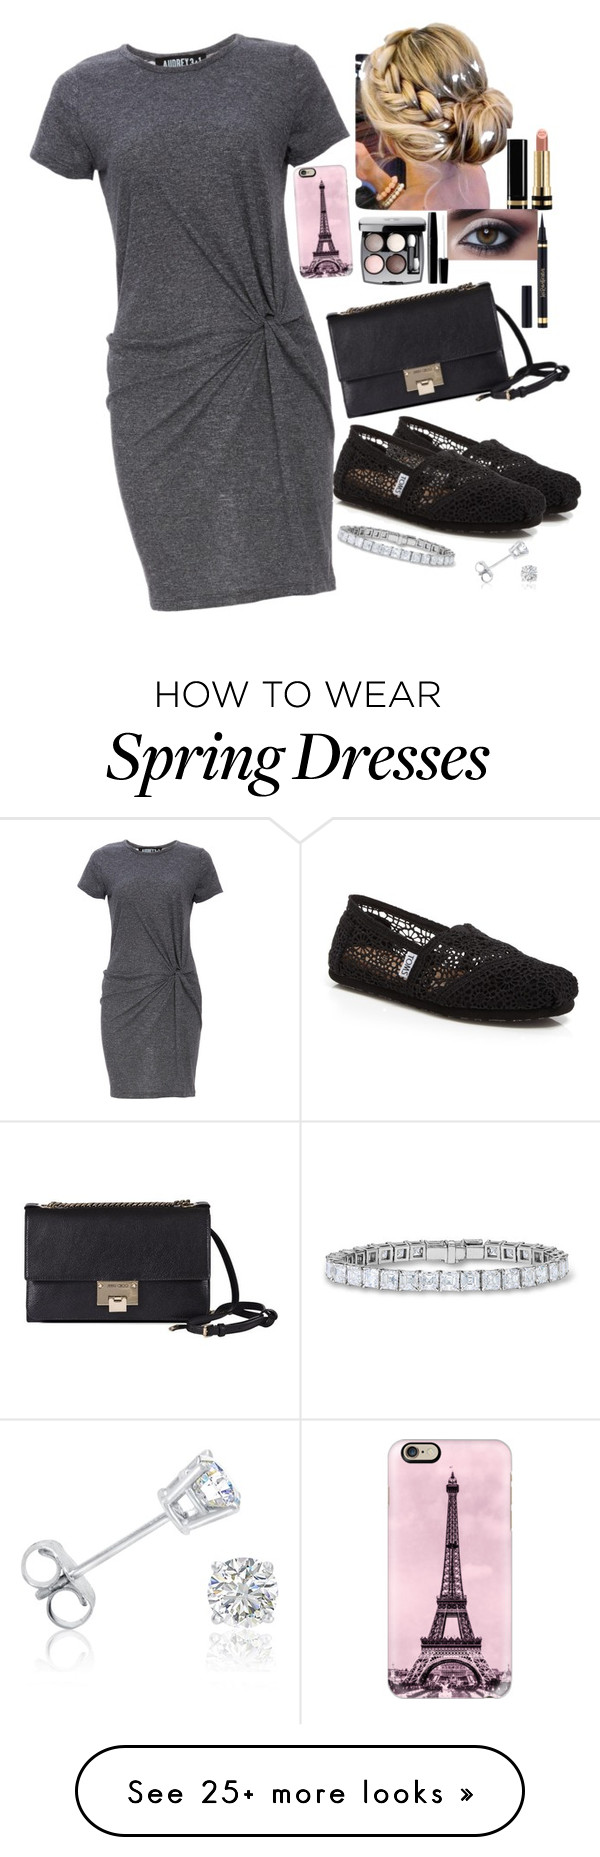 """It's A Shirtdress"" by brooklynslayer on Polyvore featuring TOMS, Audrey 3+1, Jimmy Choo, Casetify, Yves Saint Laurent, Gucci, Chanel, Amanda Rose Collection and shirtdress"